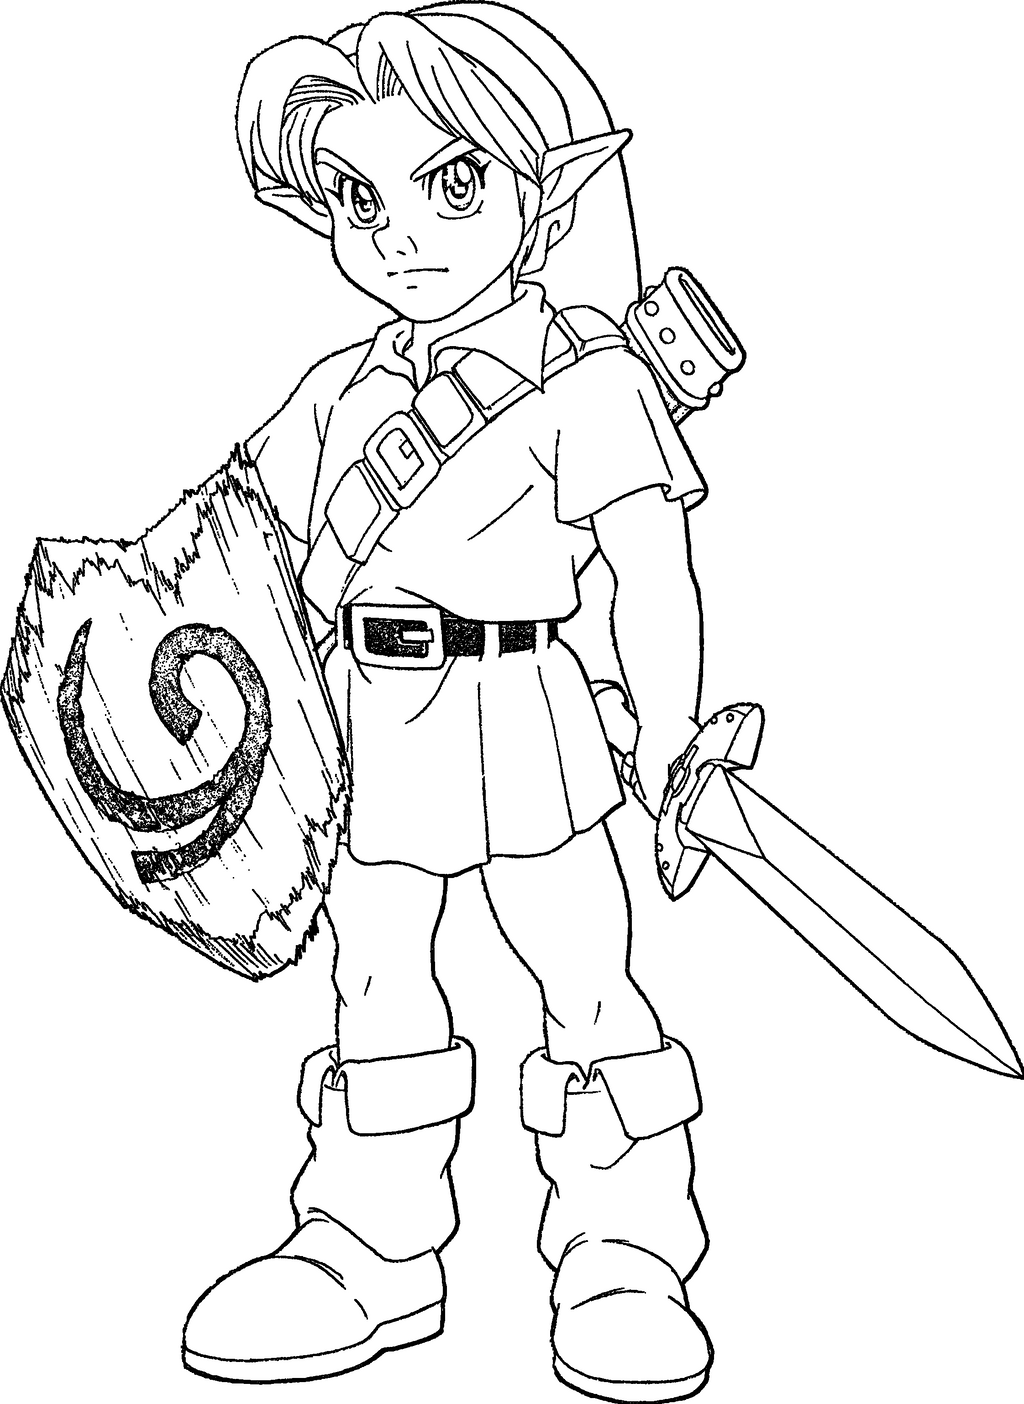 Young link ocarina of time lineart by skylight1989 on - Coloriage de link ...